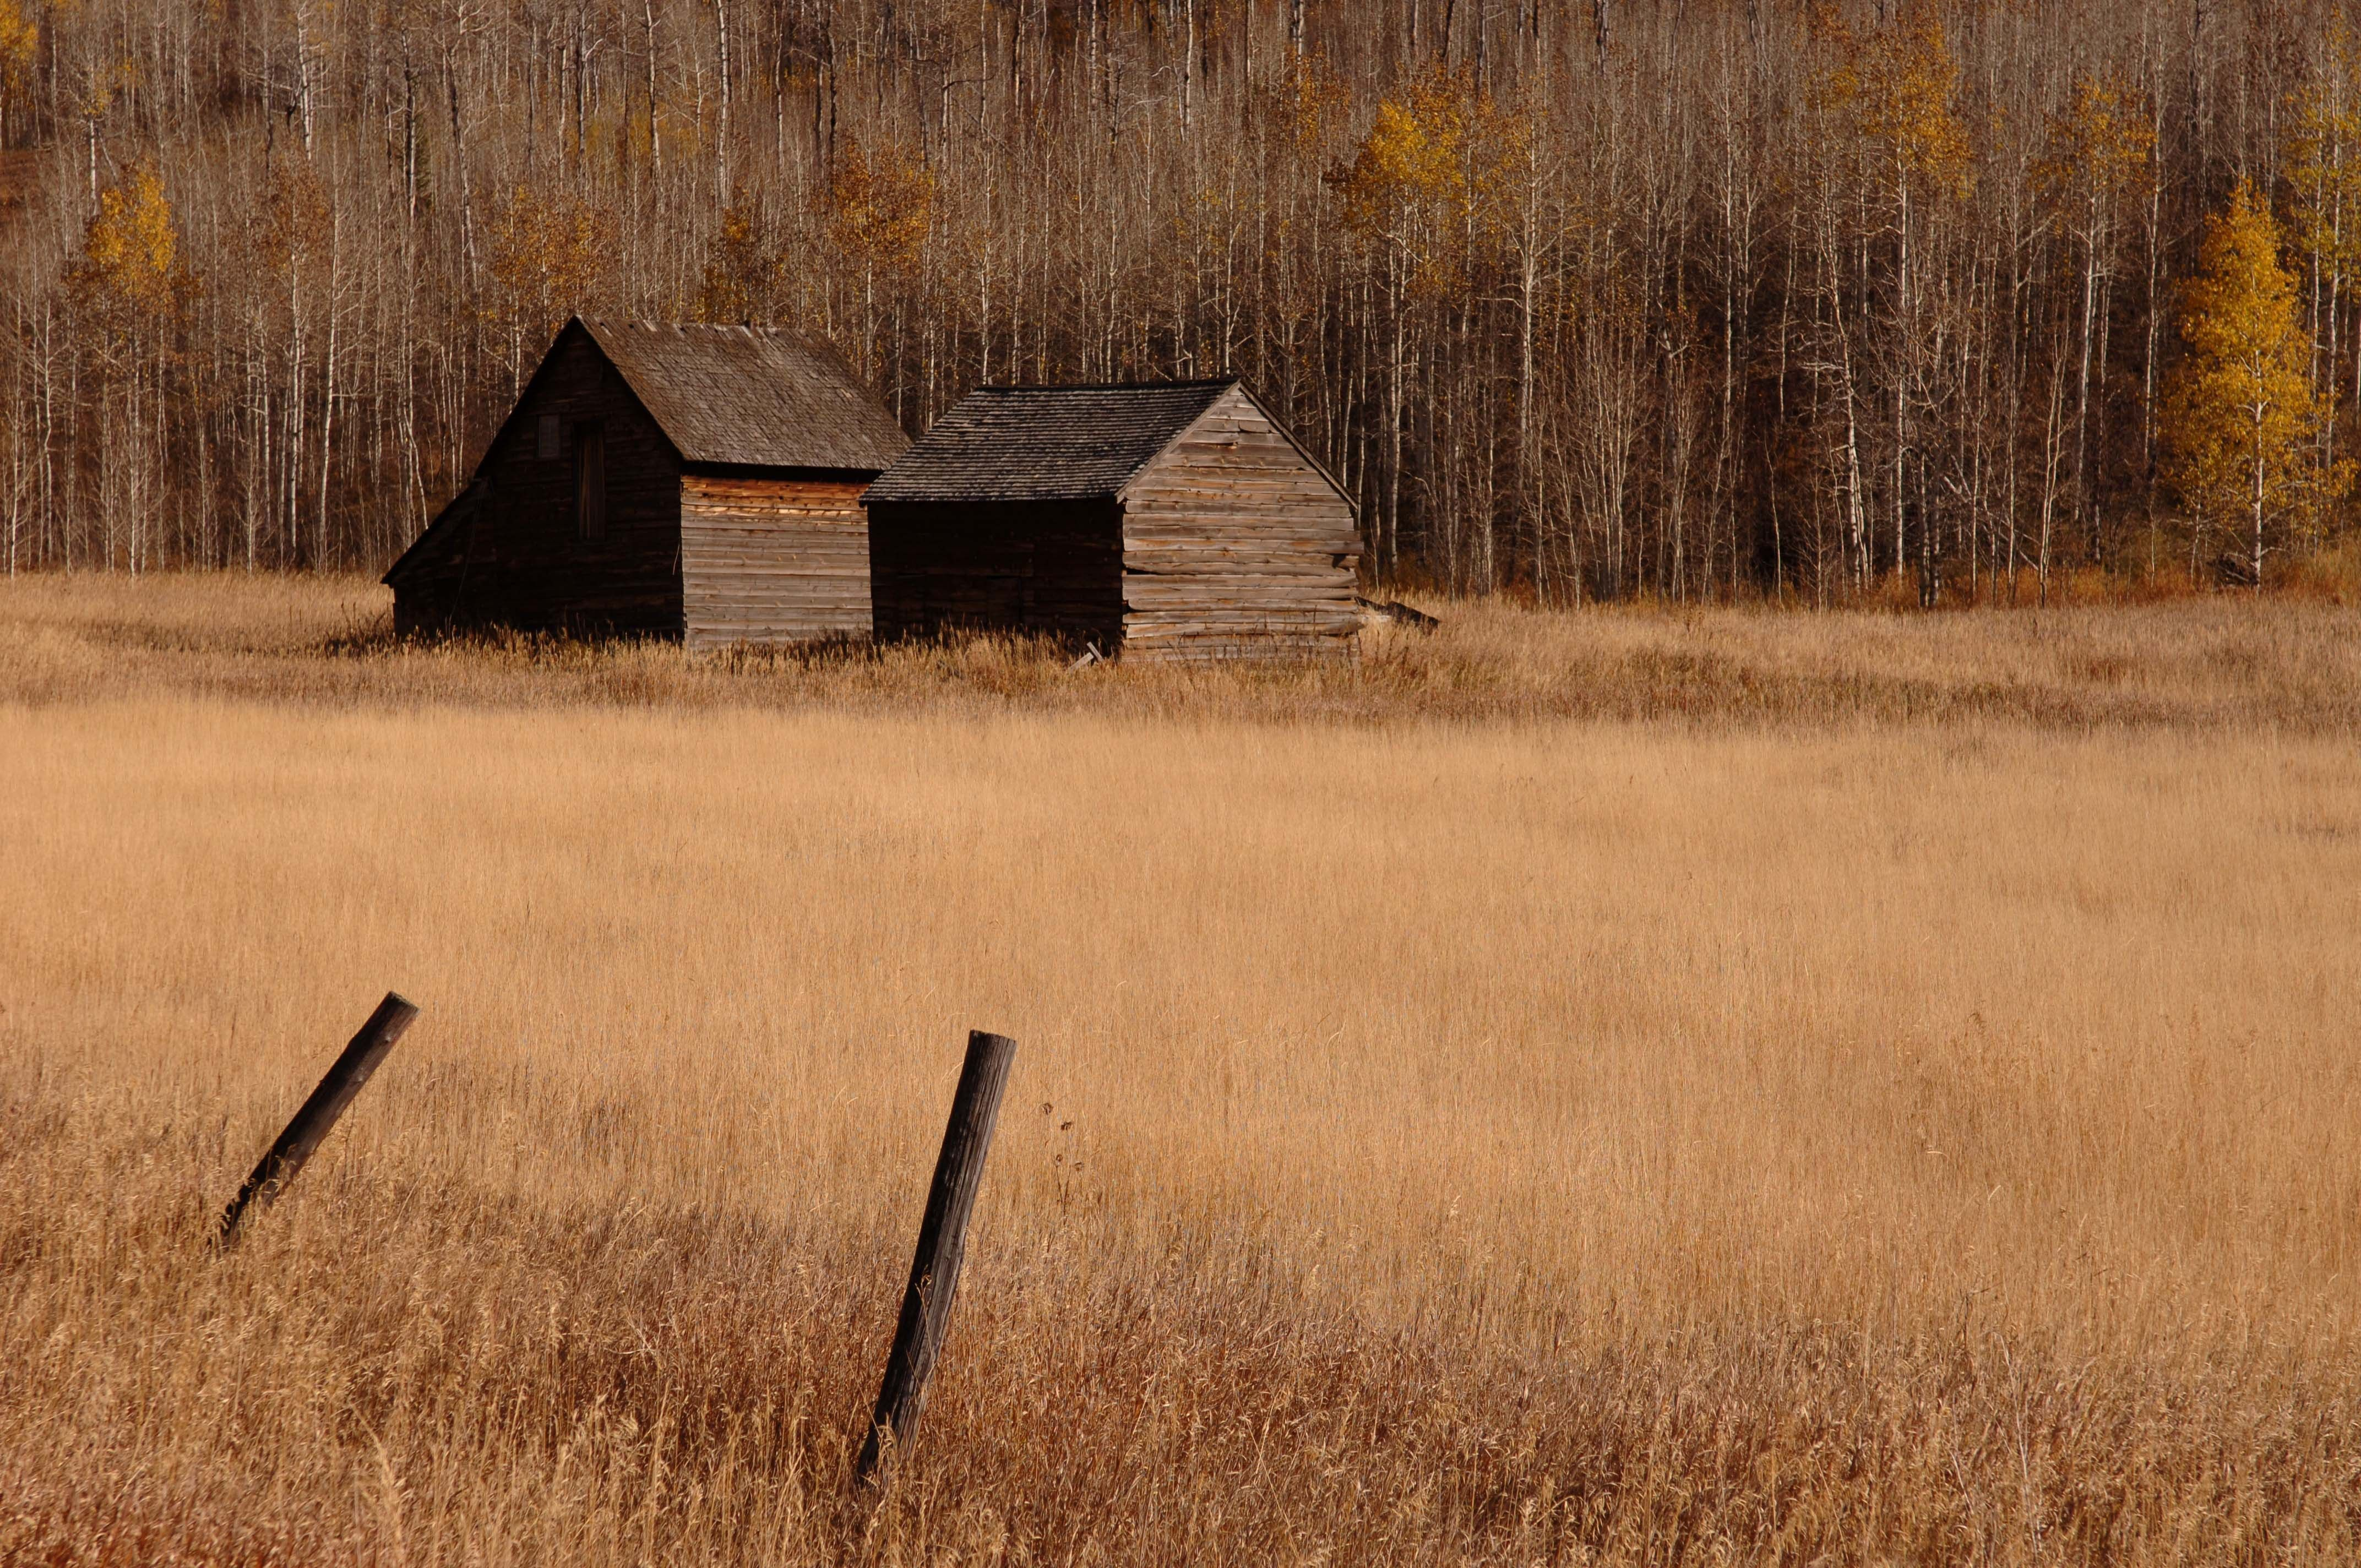 Two cabins in a field, with trees with sparse yellow leaves in the background and two fence posts in the foreground.